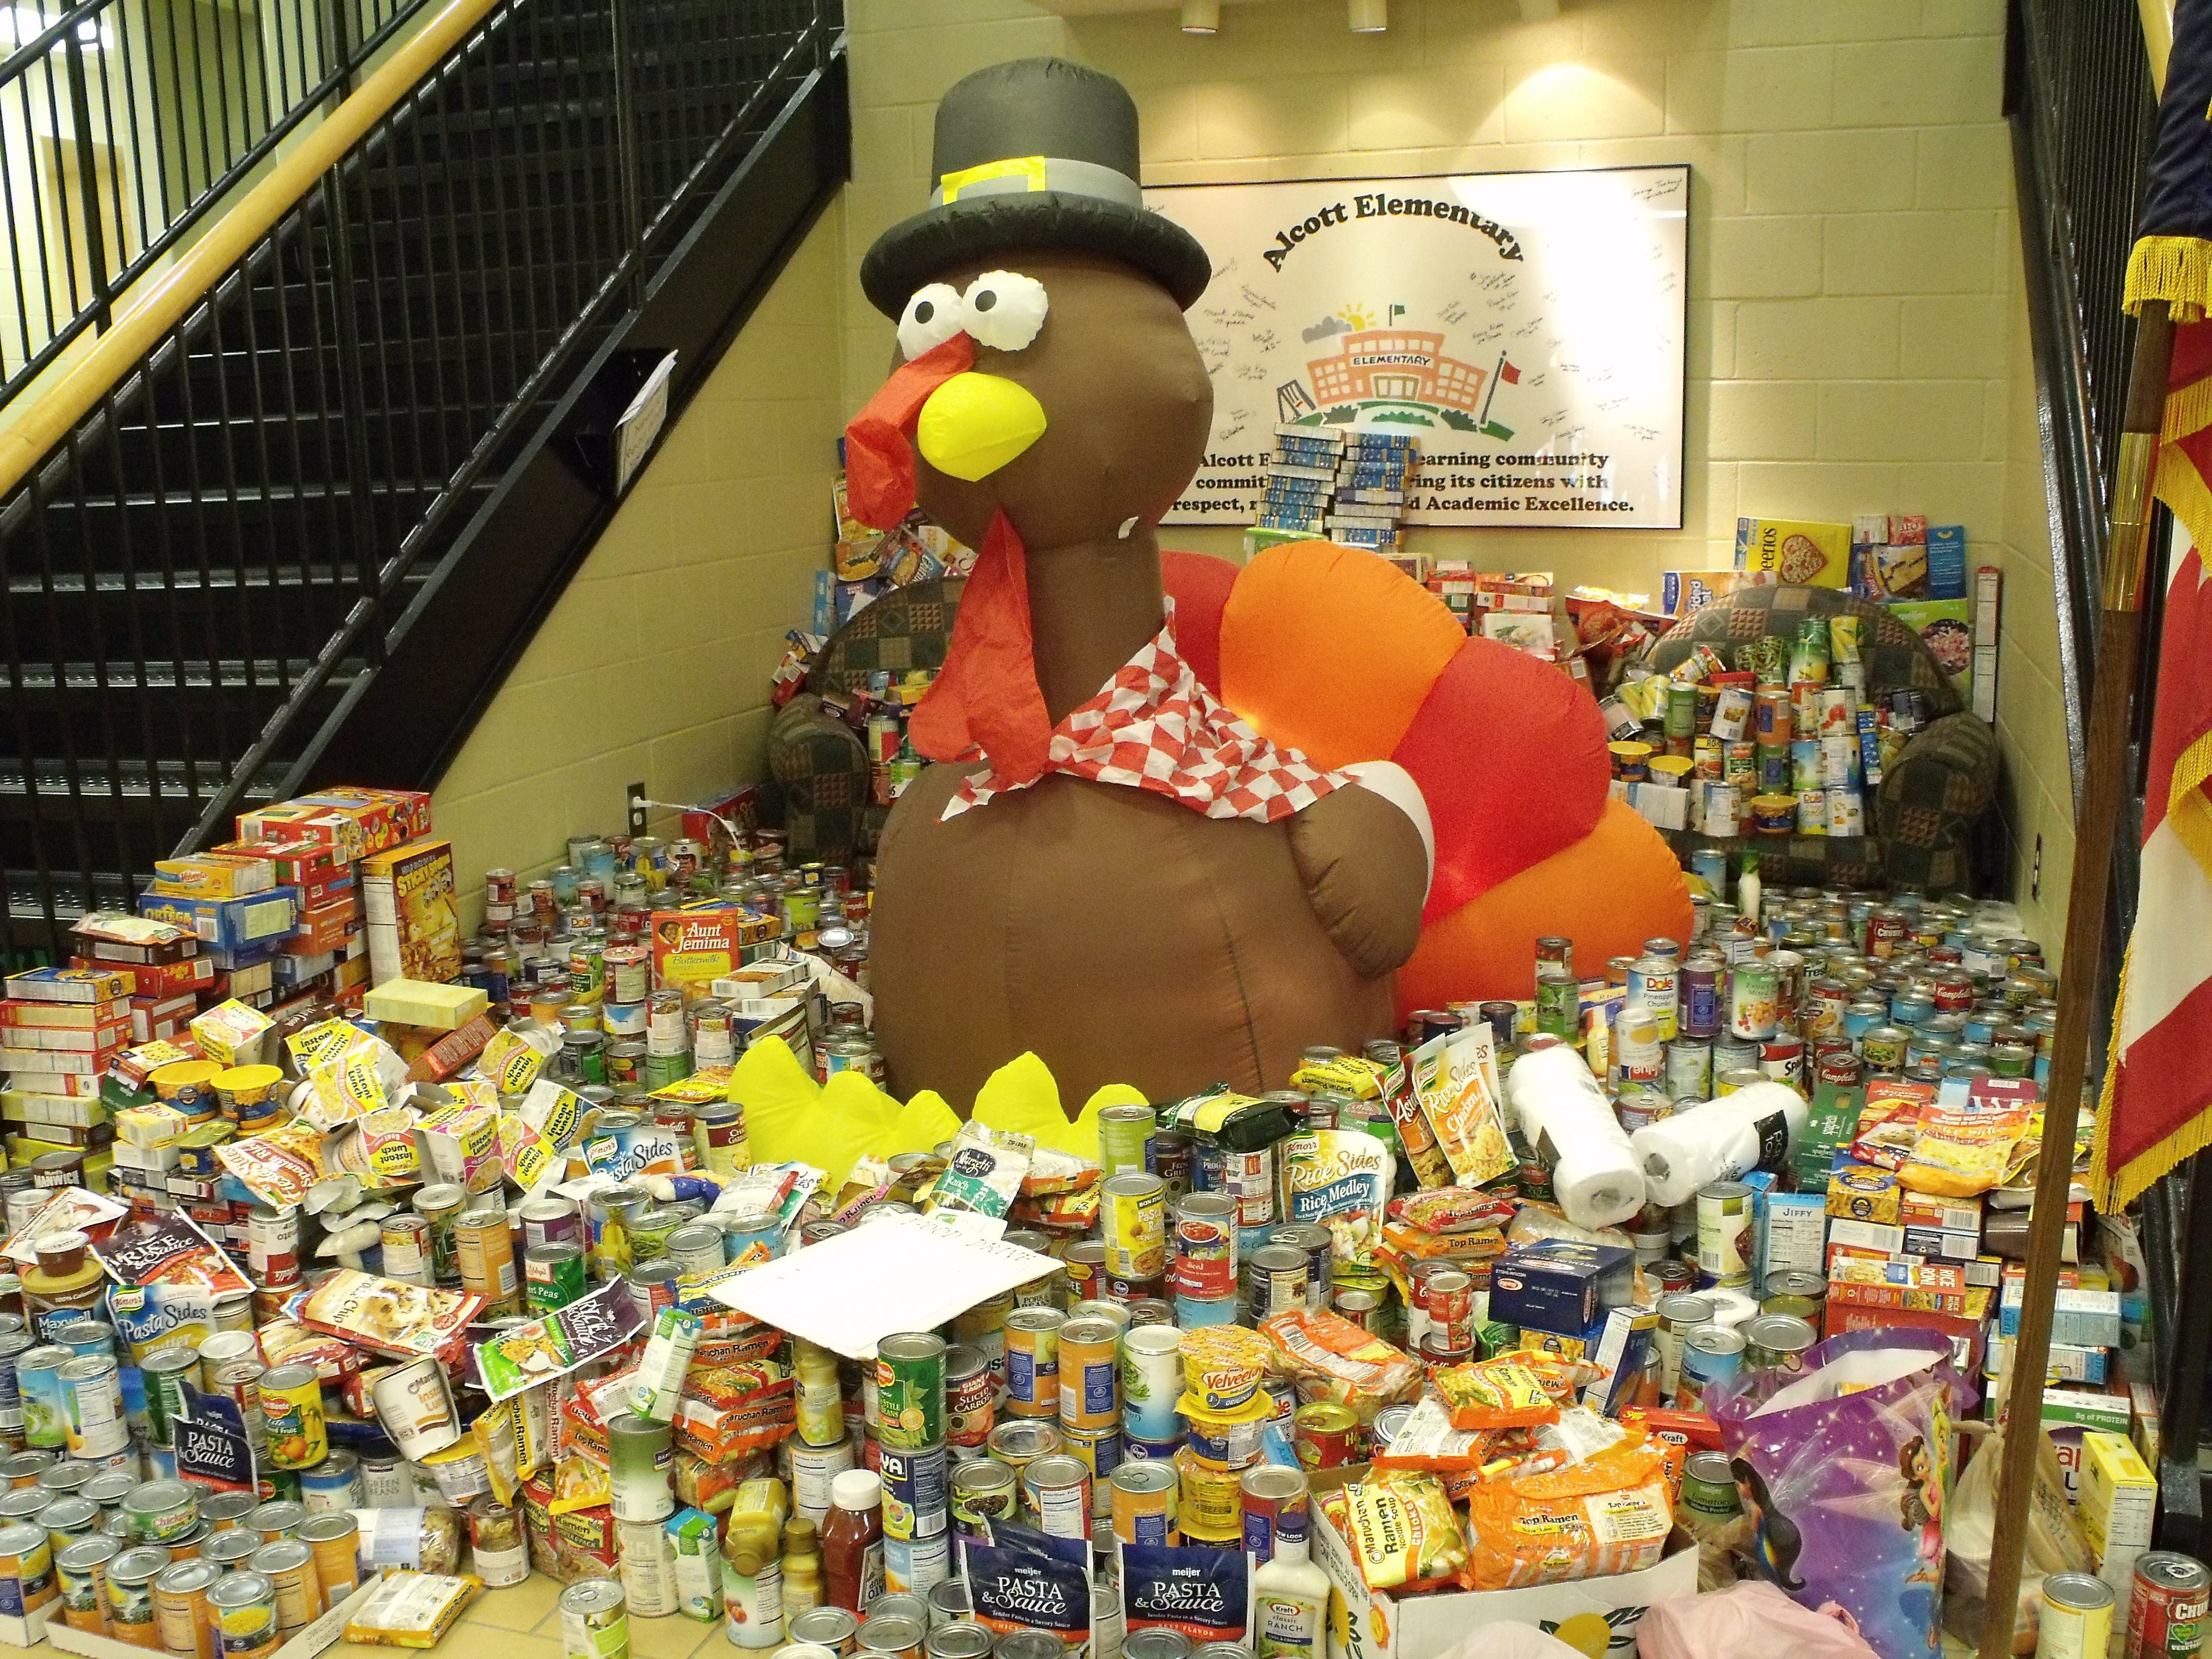 Alcott's food and product placed in front of a turkey mascot